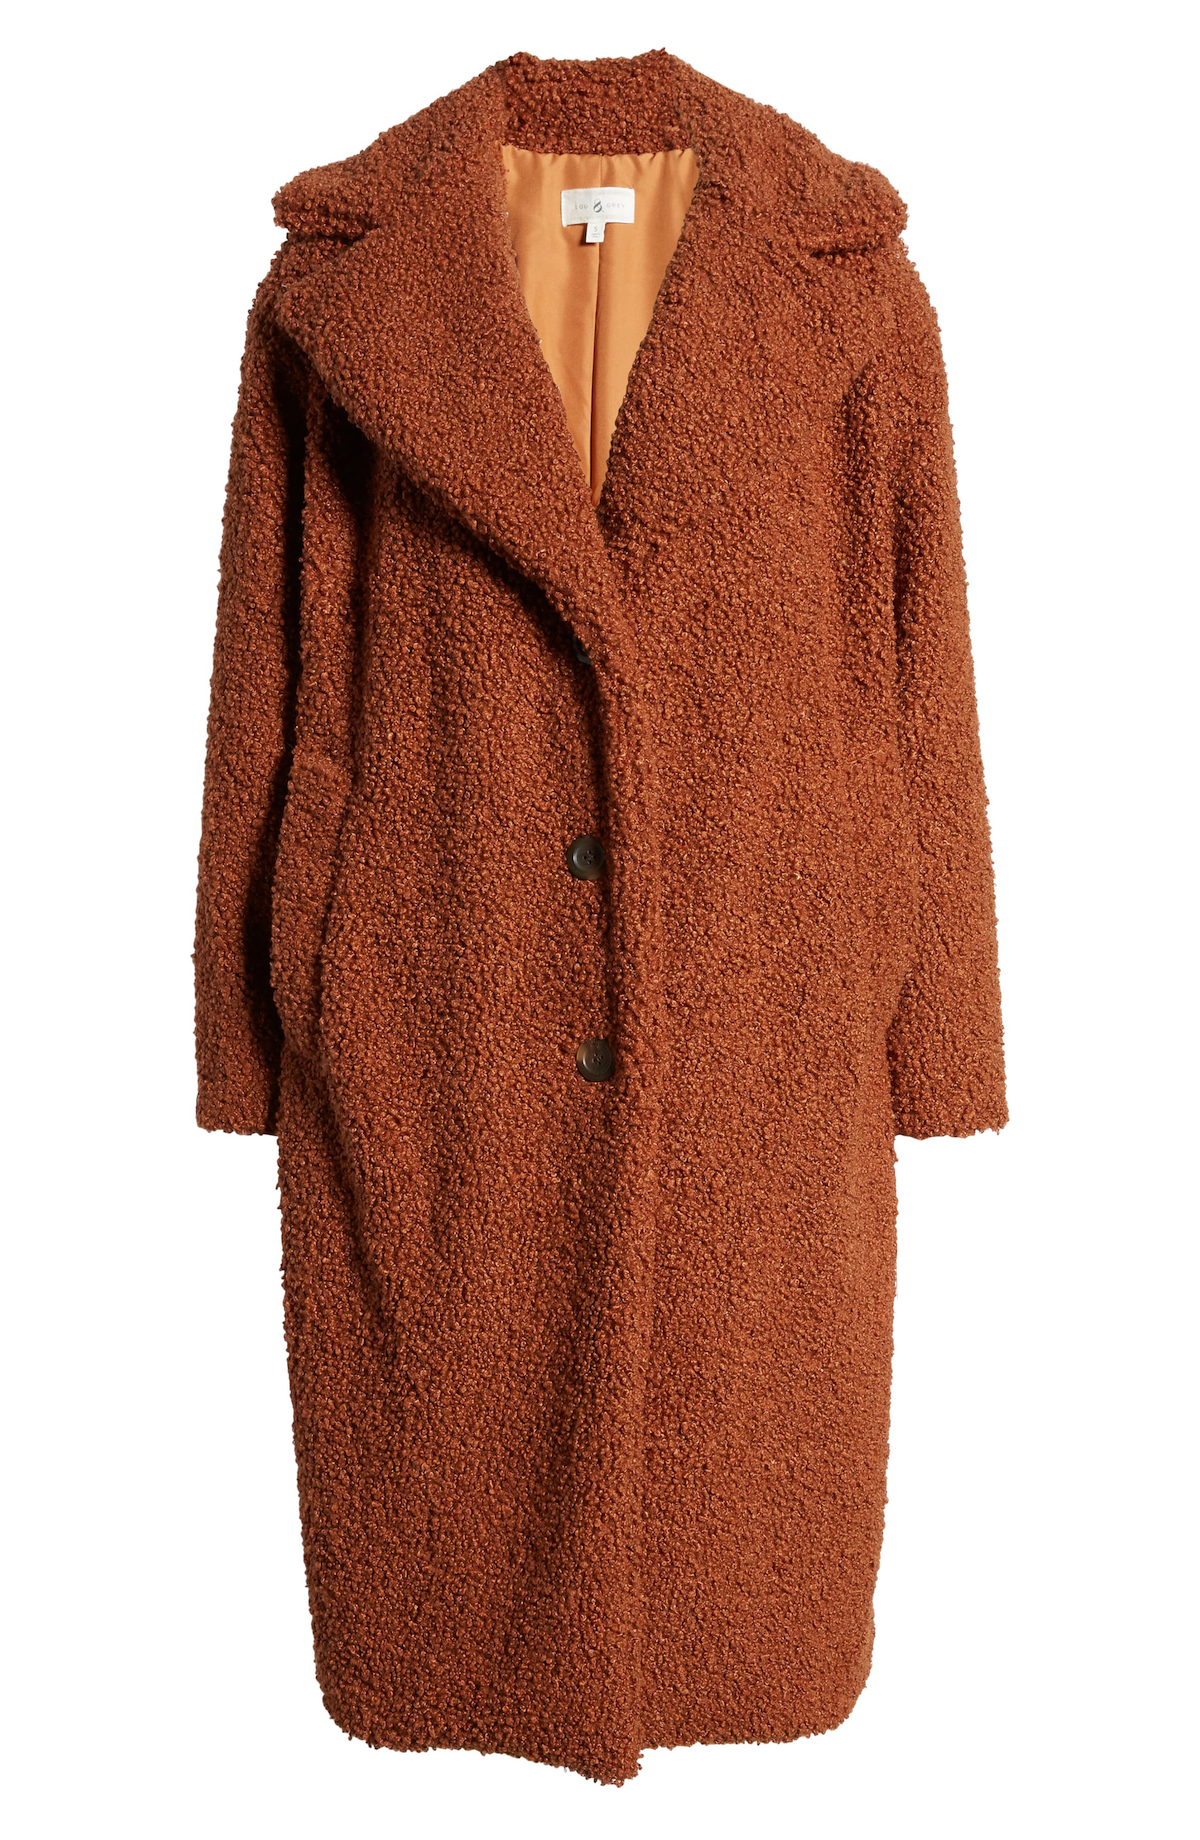 Holiday Gift Guide 2019 Cozy Up Faux Shearling Coat LOU & GREY Price$198.00 at nordstrom